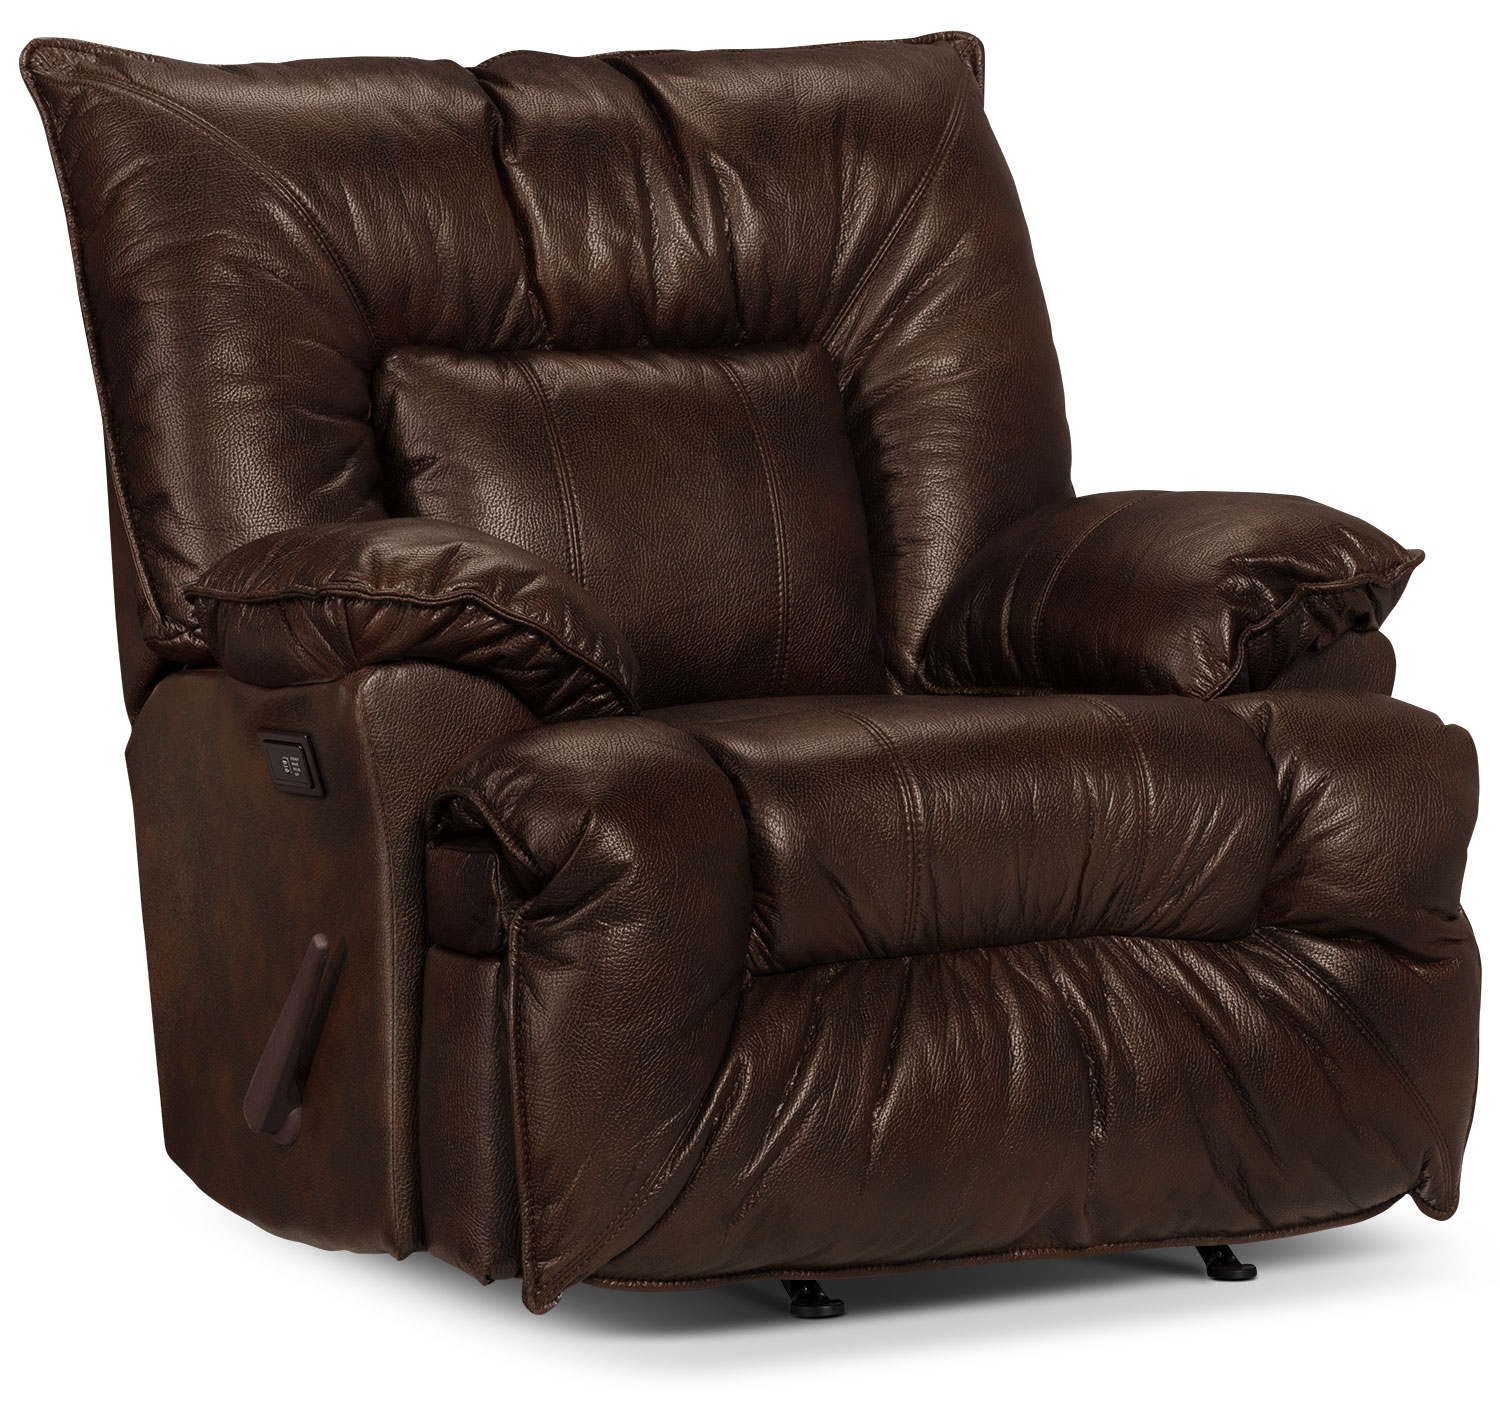 Living Room Furniture - Designed2B Recliner 7726 Genuine Leather Massage Chair - Chocolate